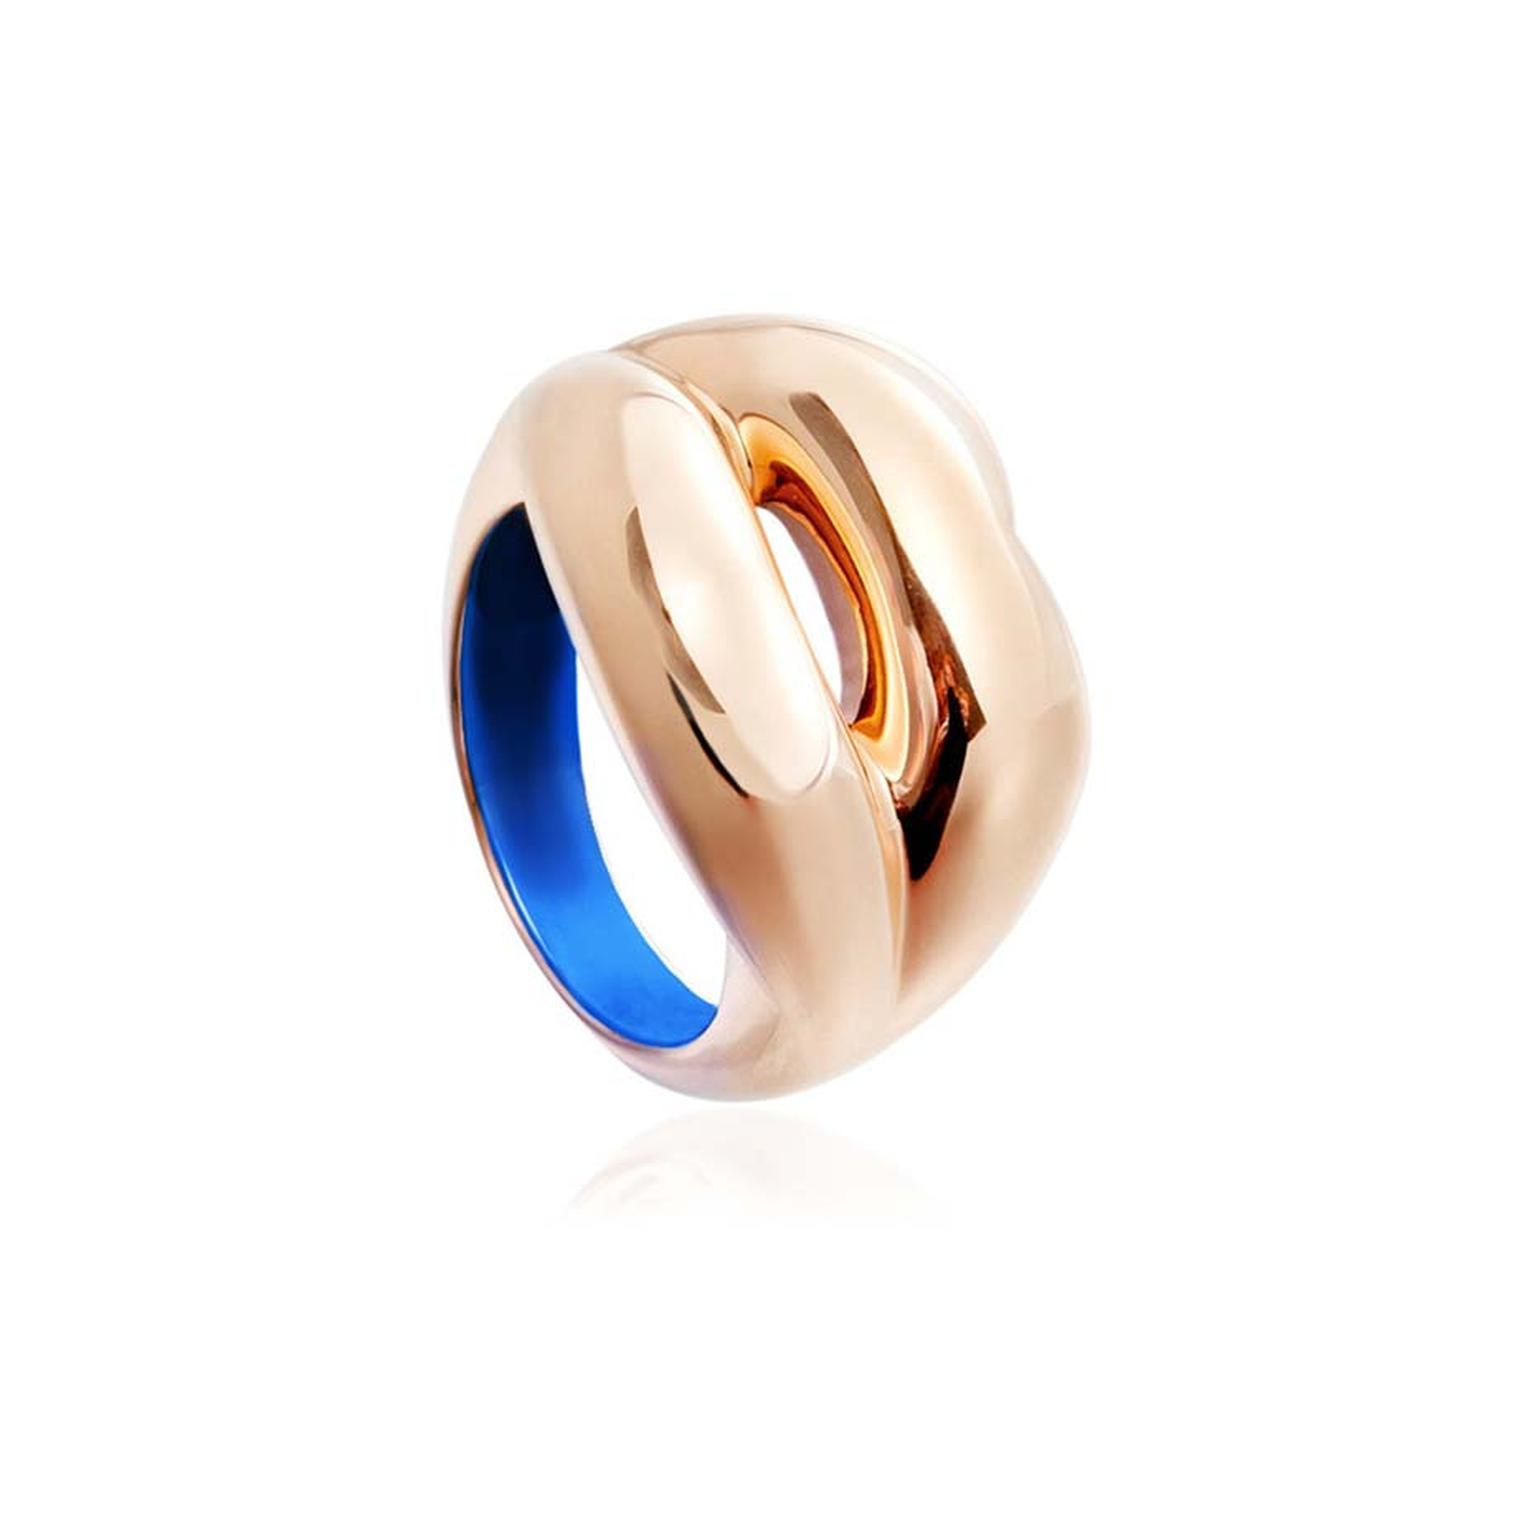 Paddle 8_Solange Azagury -partridge _Hotlips C 2015 18ct Yellow Gold And Lacquer Ring _£1000 To £1500